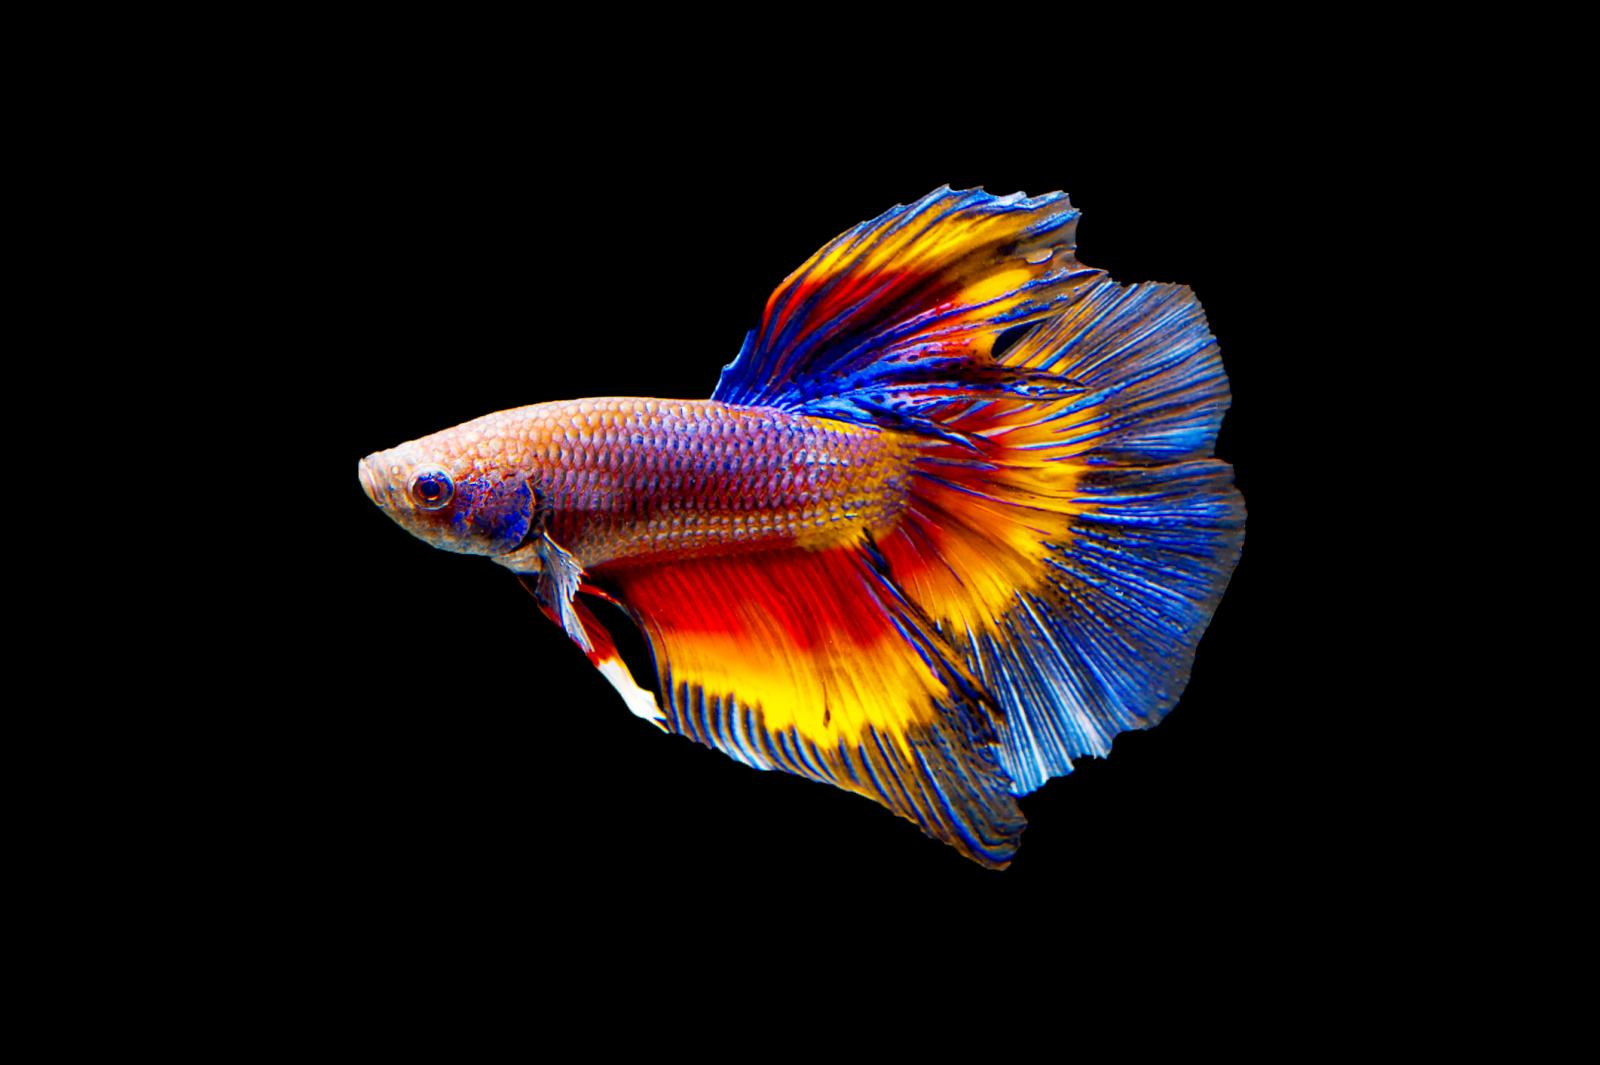 Colorful Betta fish